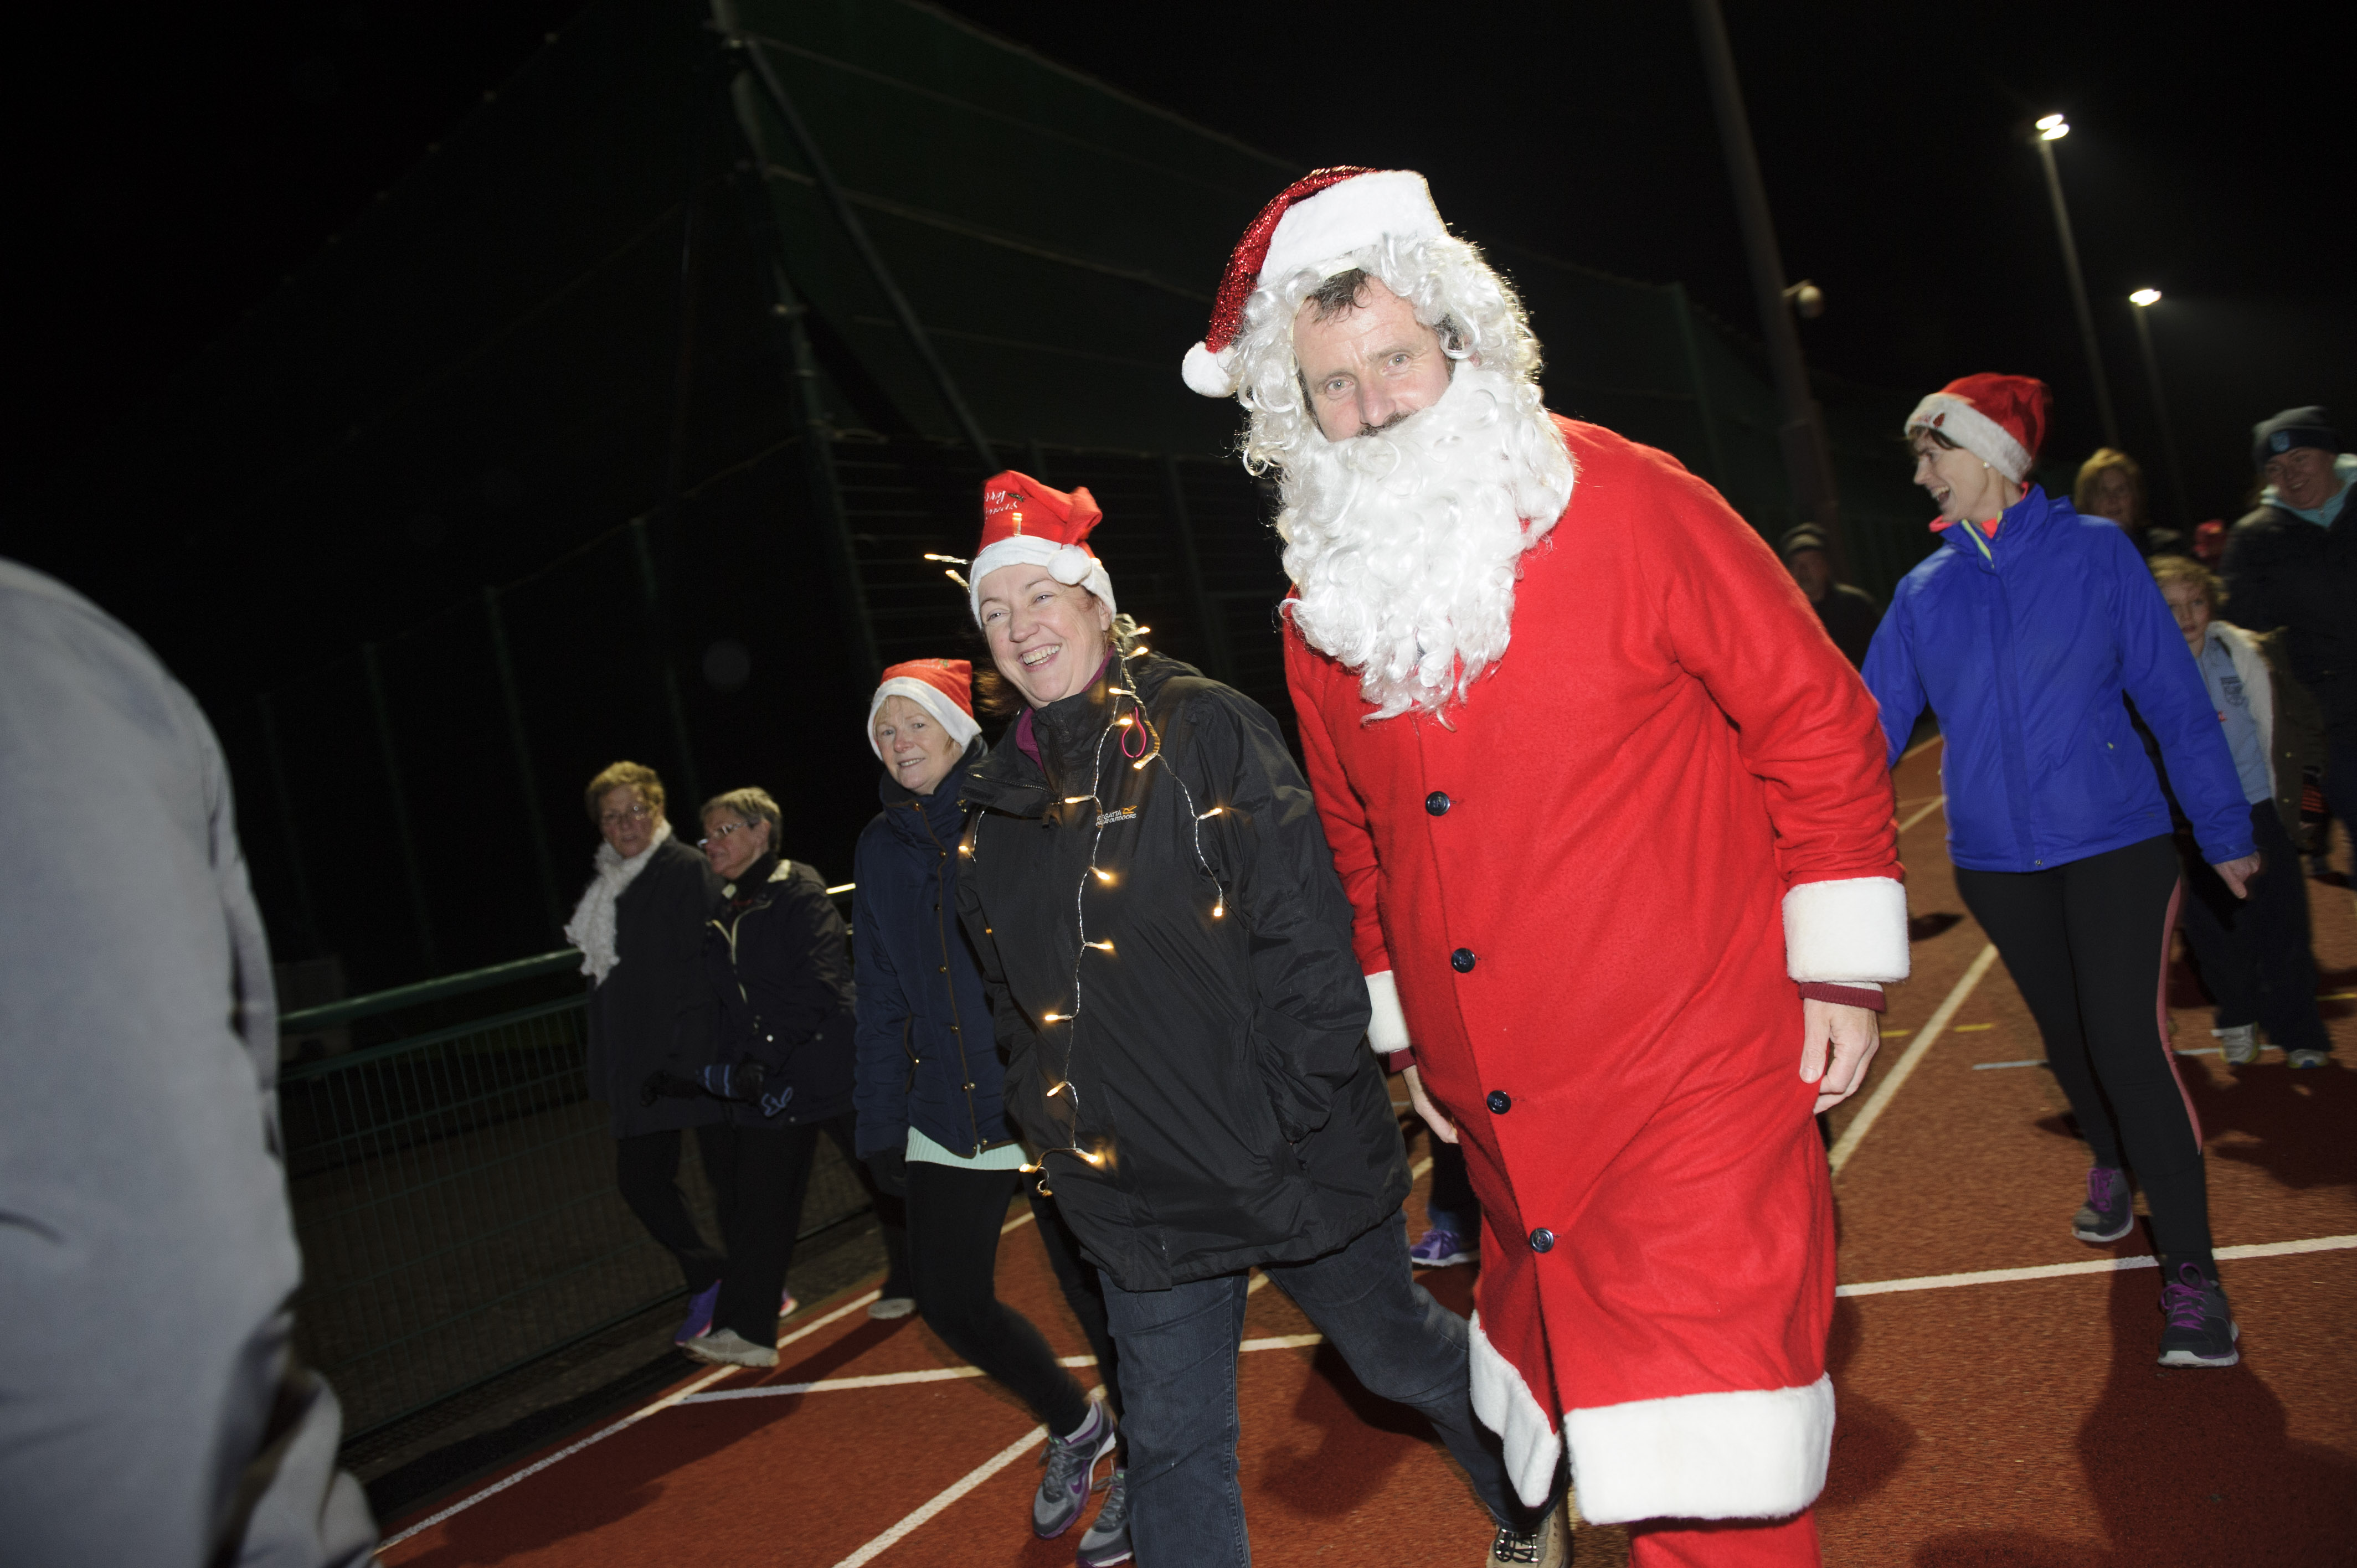 Santa and Angela Mulhall taking part in the Clones AC Santa run at The Peacelink, which was held in aid of the Friends of Clones Hospice. ©Rory Geary/The Northern Standard